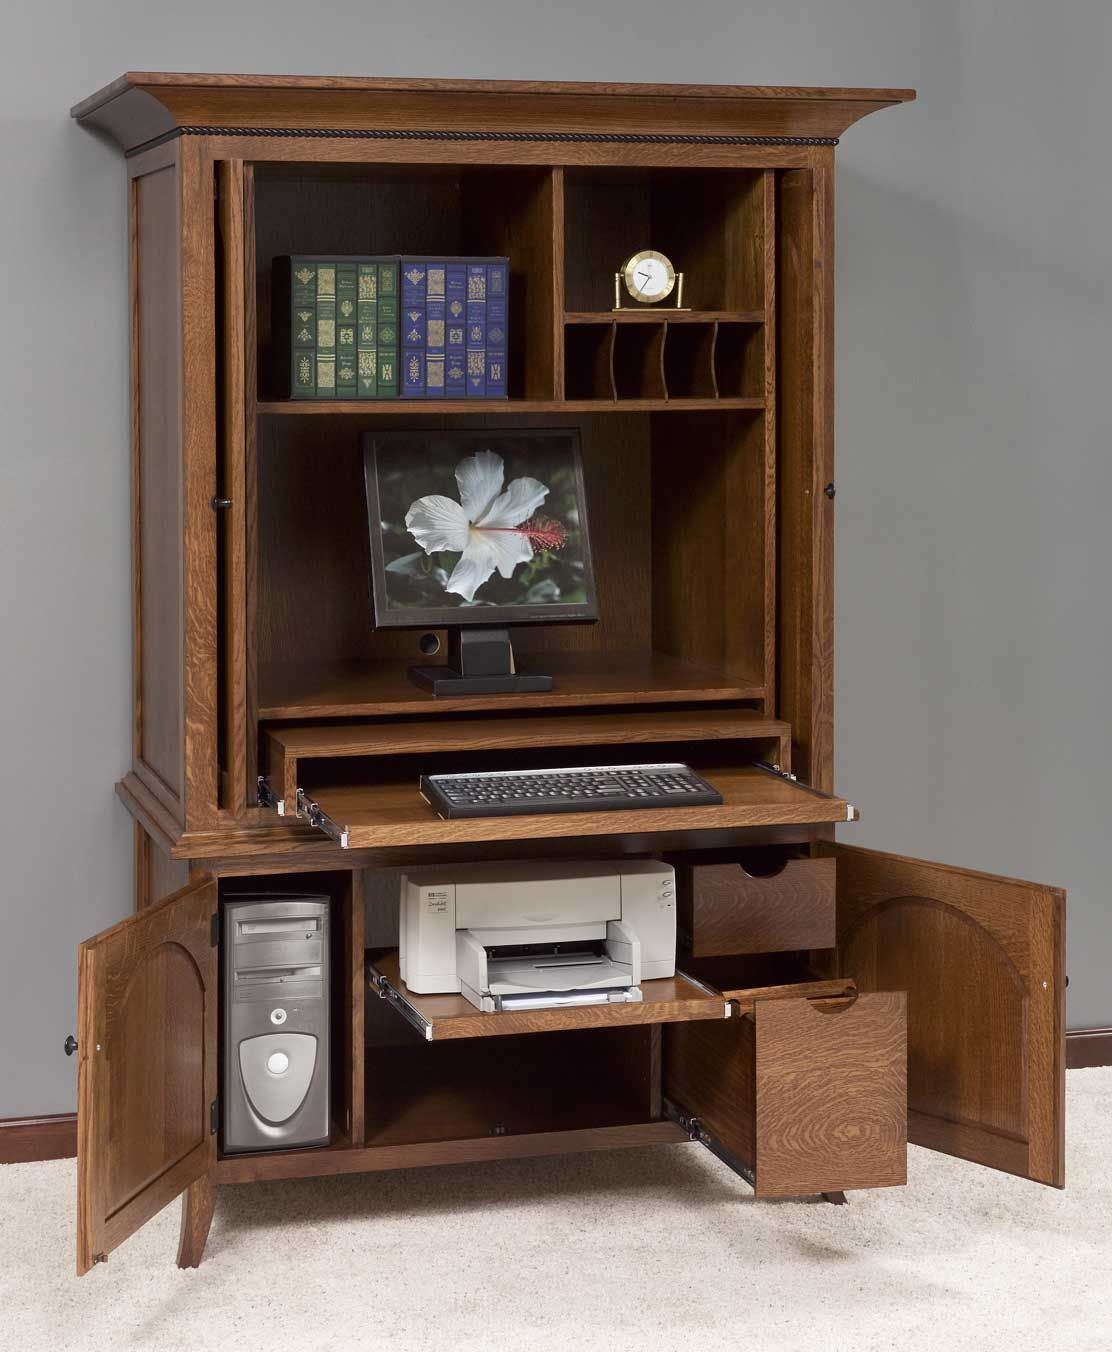 Home Office Furniture Computer Armoires Amishhandcraftedheirlooms Com Images Home Office Computer Armo Computer Armoire Armoire Desk Armoire Repurpose